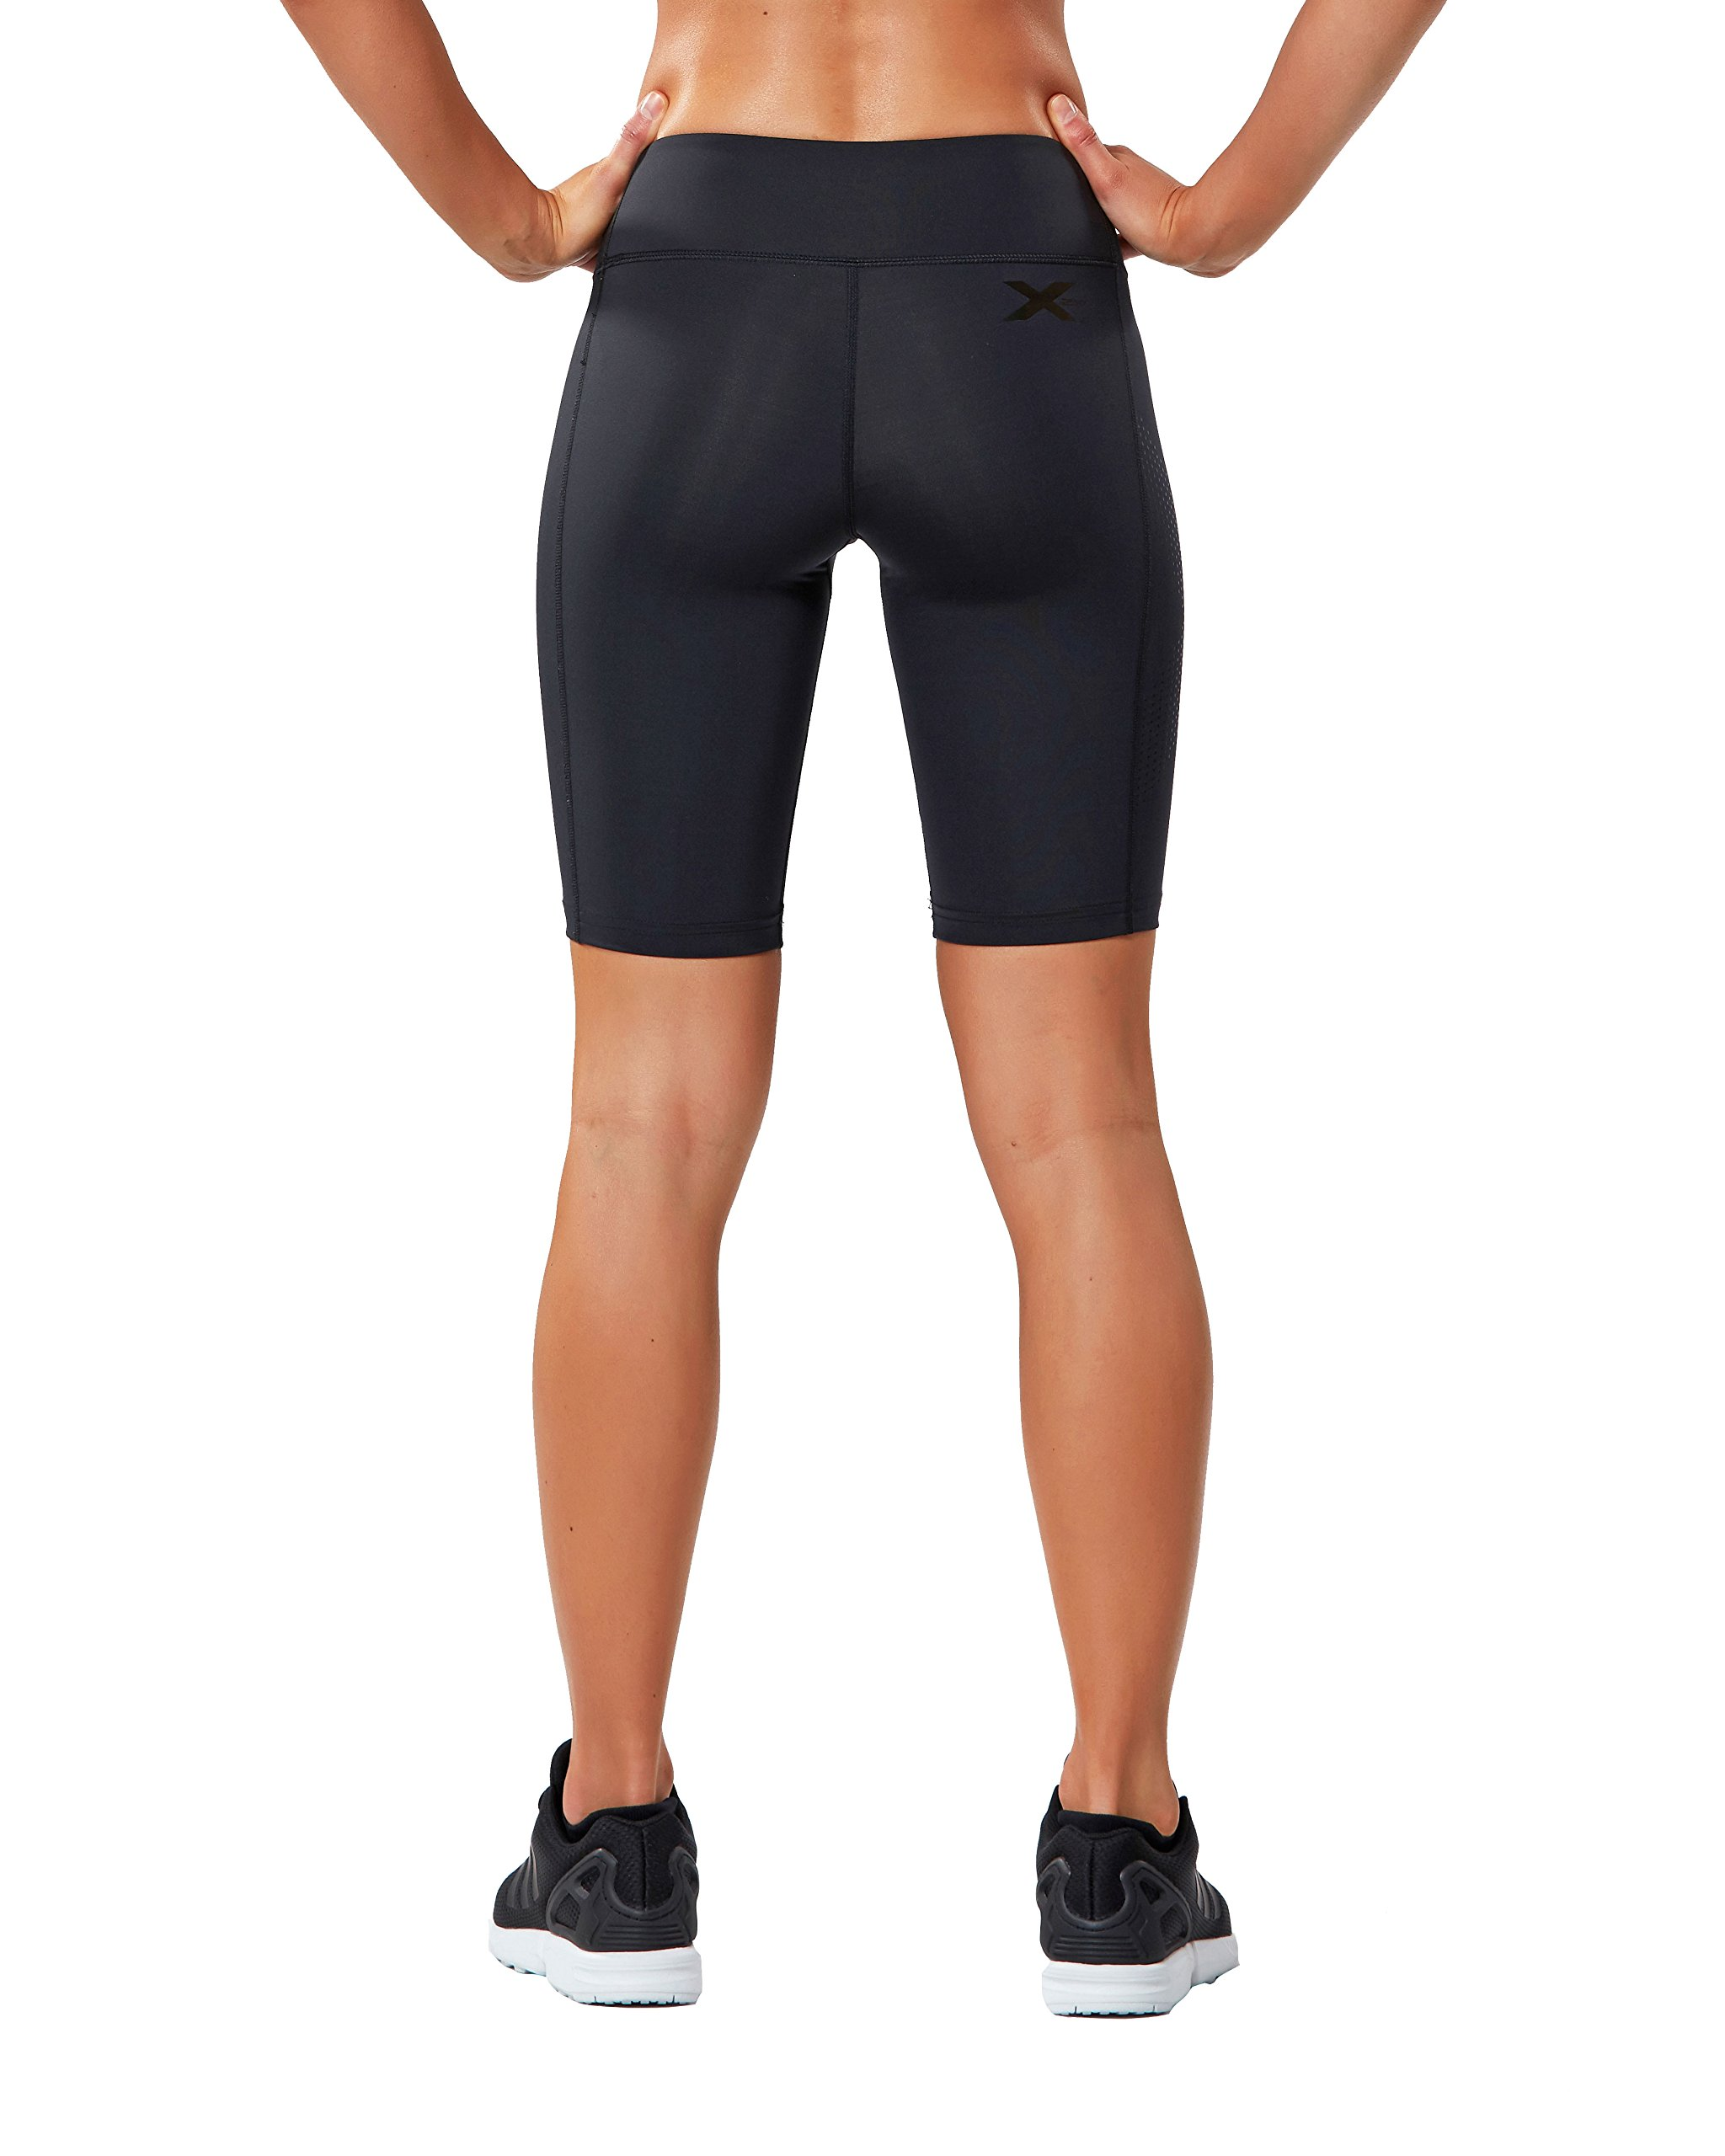 2XU Women's Mid-Rise Athletic Compression Shorts, Black/Dotted Black Logo, X-Small by 2XU (Image #3)